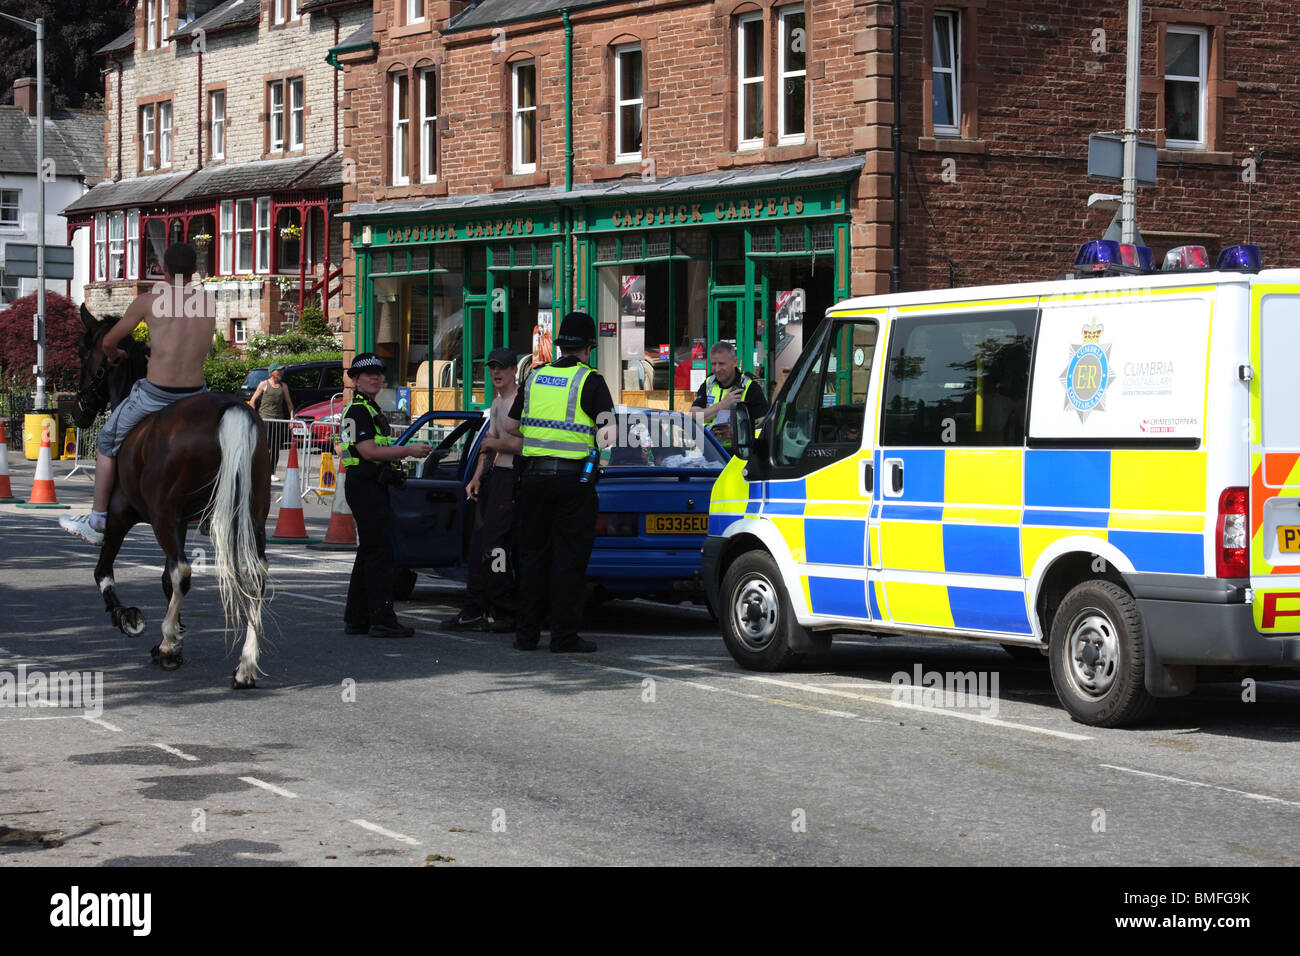 A police vehicle check at the Appleby Horse Fair, Appleby-In-Westmorland, Cumbria, England, U.K. - Stock Image